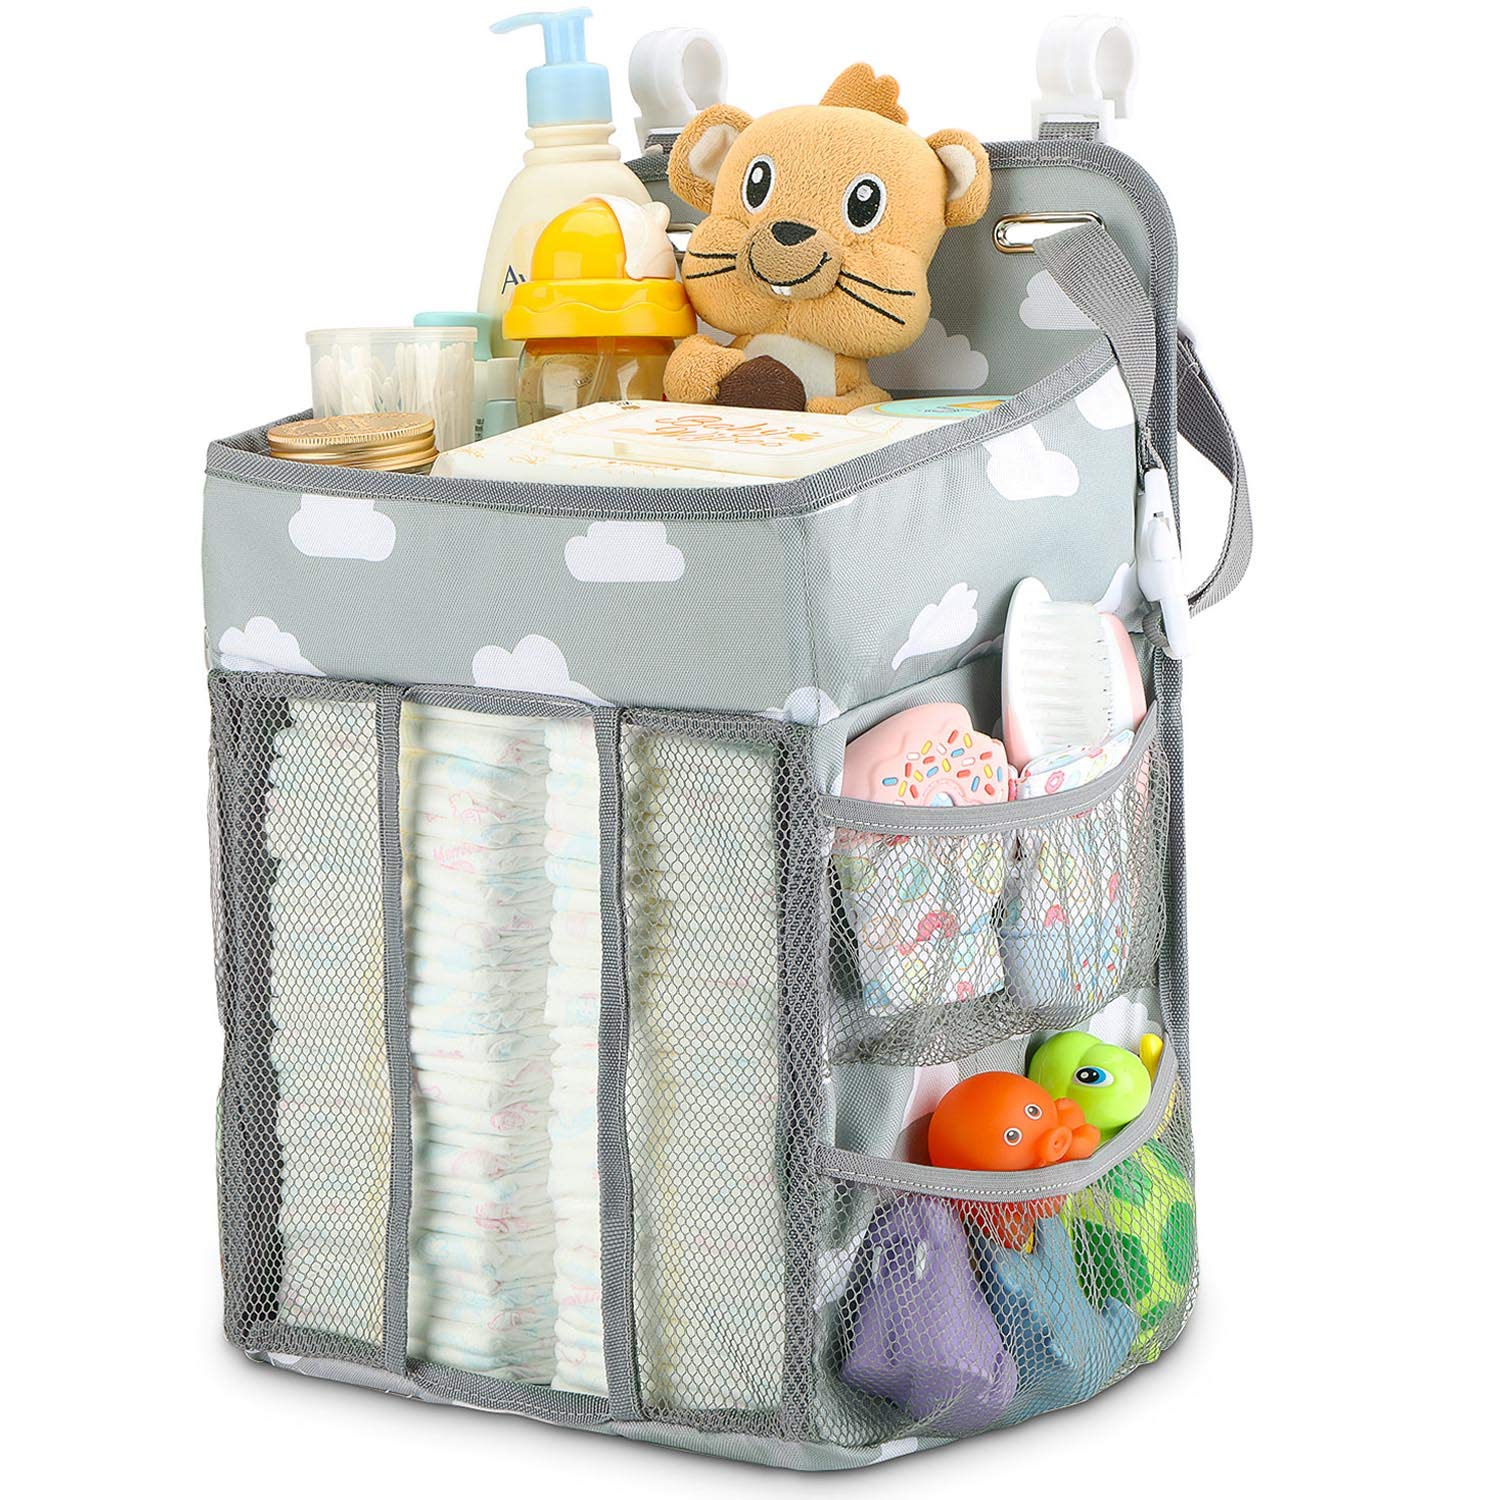 Hanging Diaper Caddy Organizer - Diaper Stacker for Changing Table, Crib, Playard or Wall & Nursery Organization Baby Shower Gifts for Newborn (Gray Cloud) by Maliton